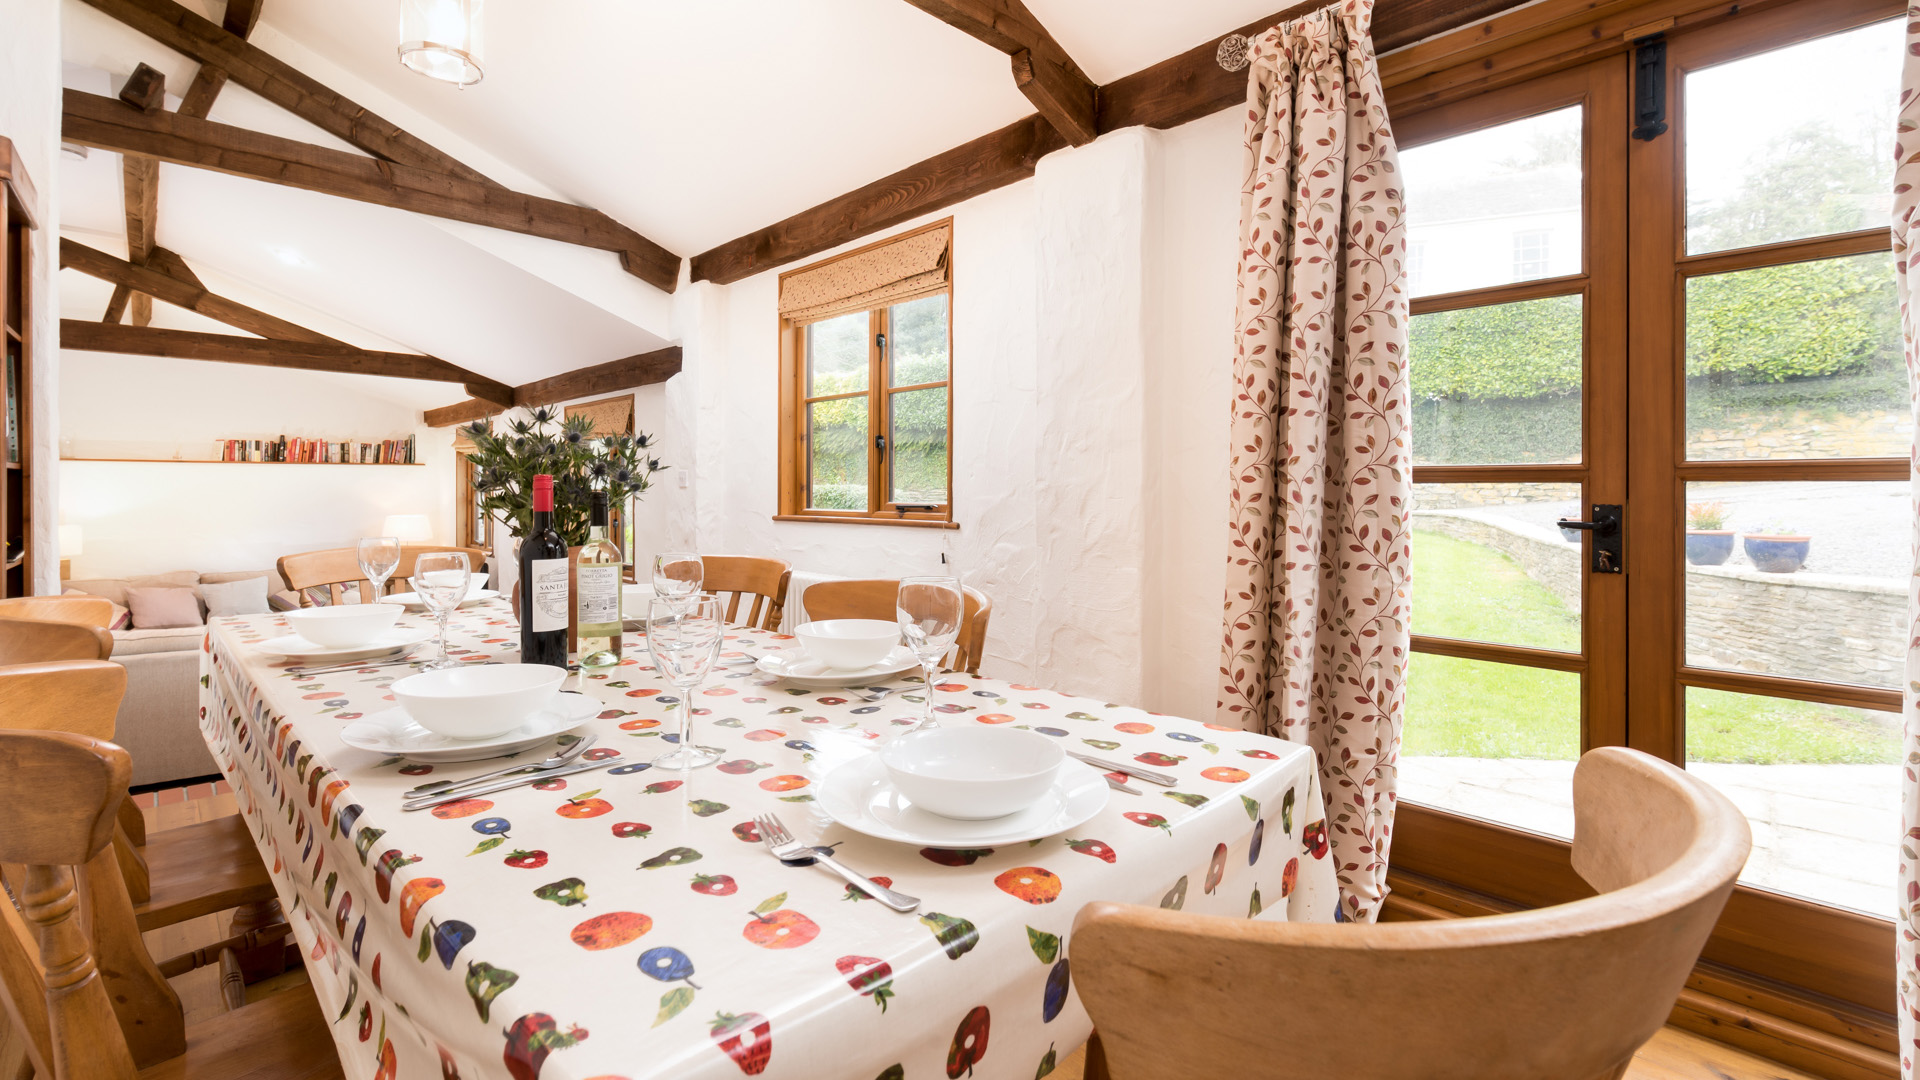 The Byre dining area